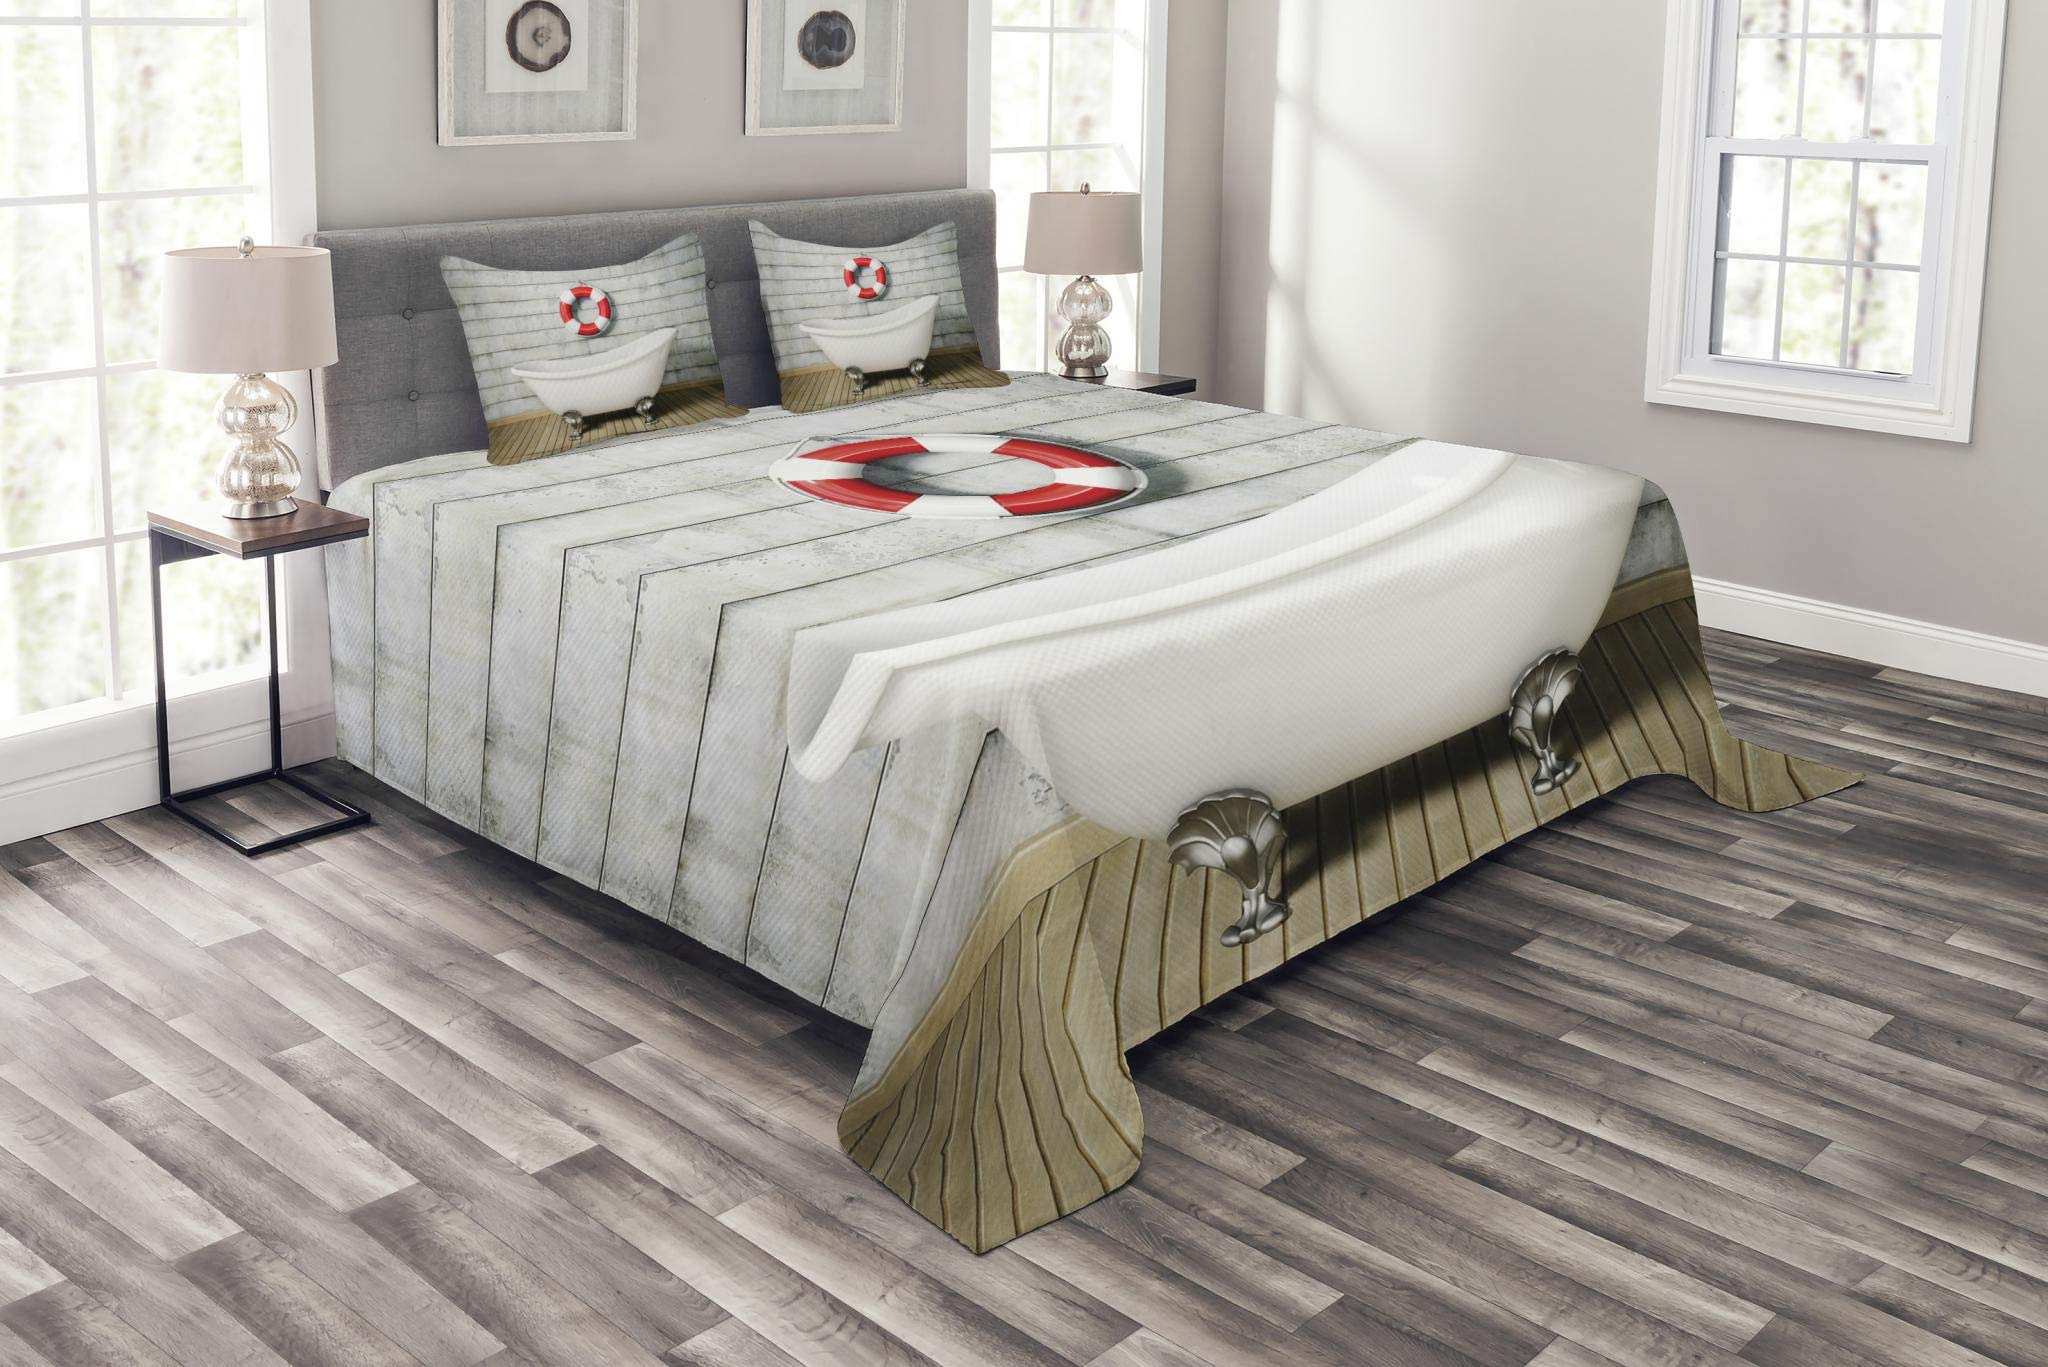 Ambesonne Vintage Bedspread Set King Size, Bathtub in a Room Grunge Wall Classical Floral Foot Resting Sailor Nautical, Decorative Quilted 3 Piece Coverlet Set with 2 Pillow Shams, White Red Gray